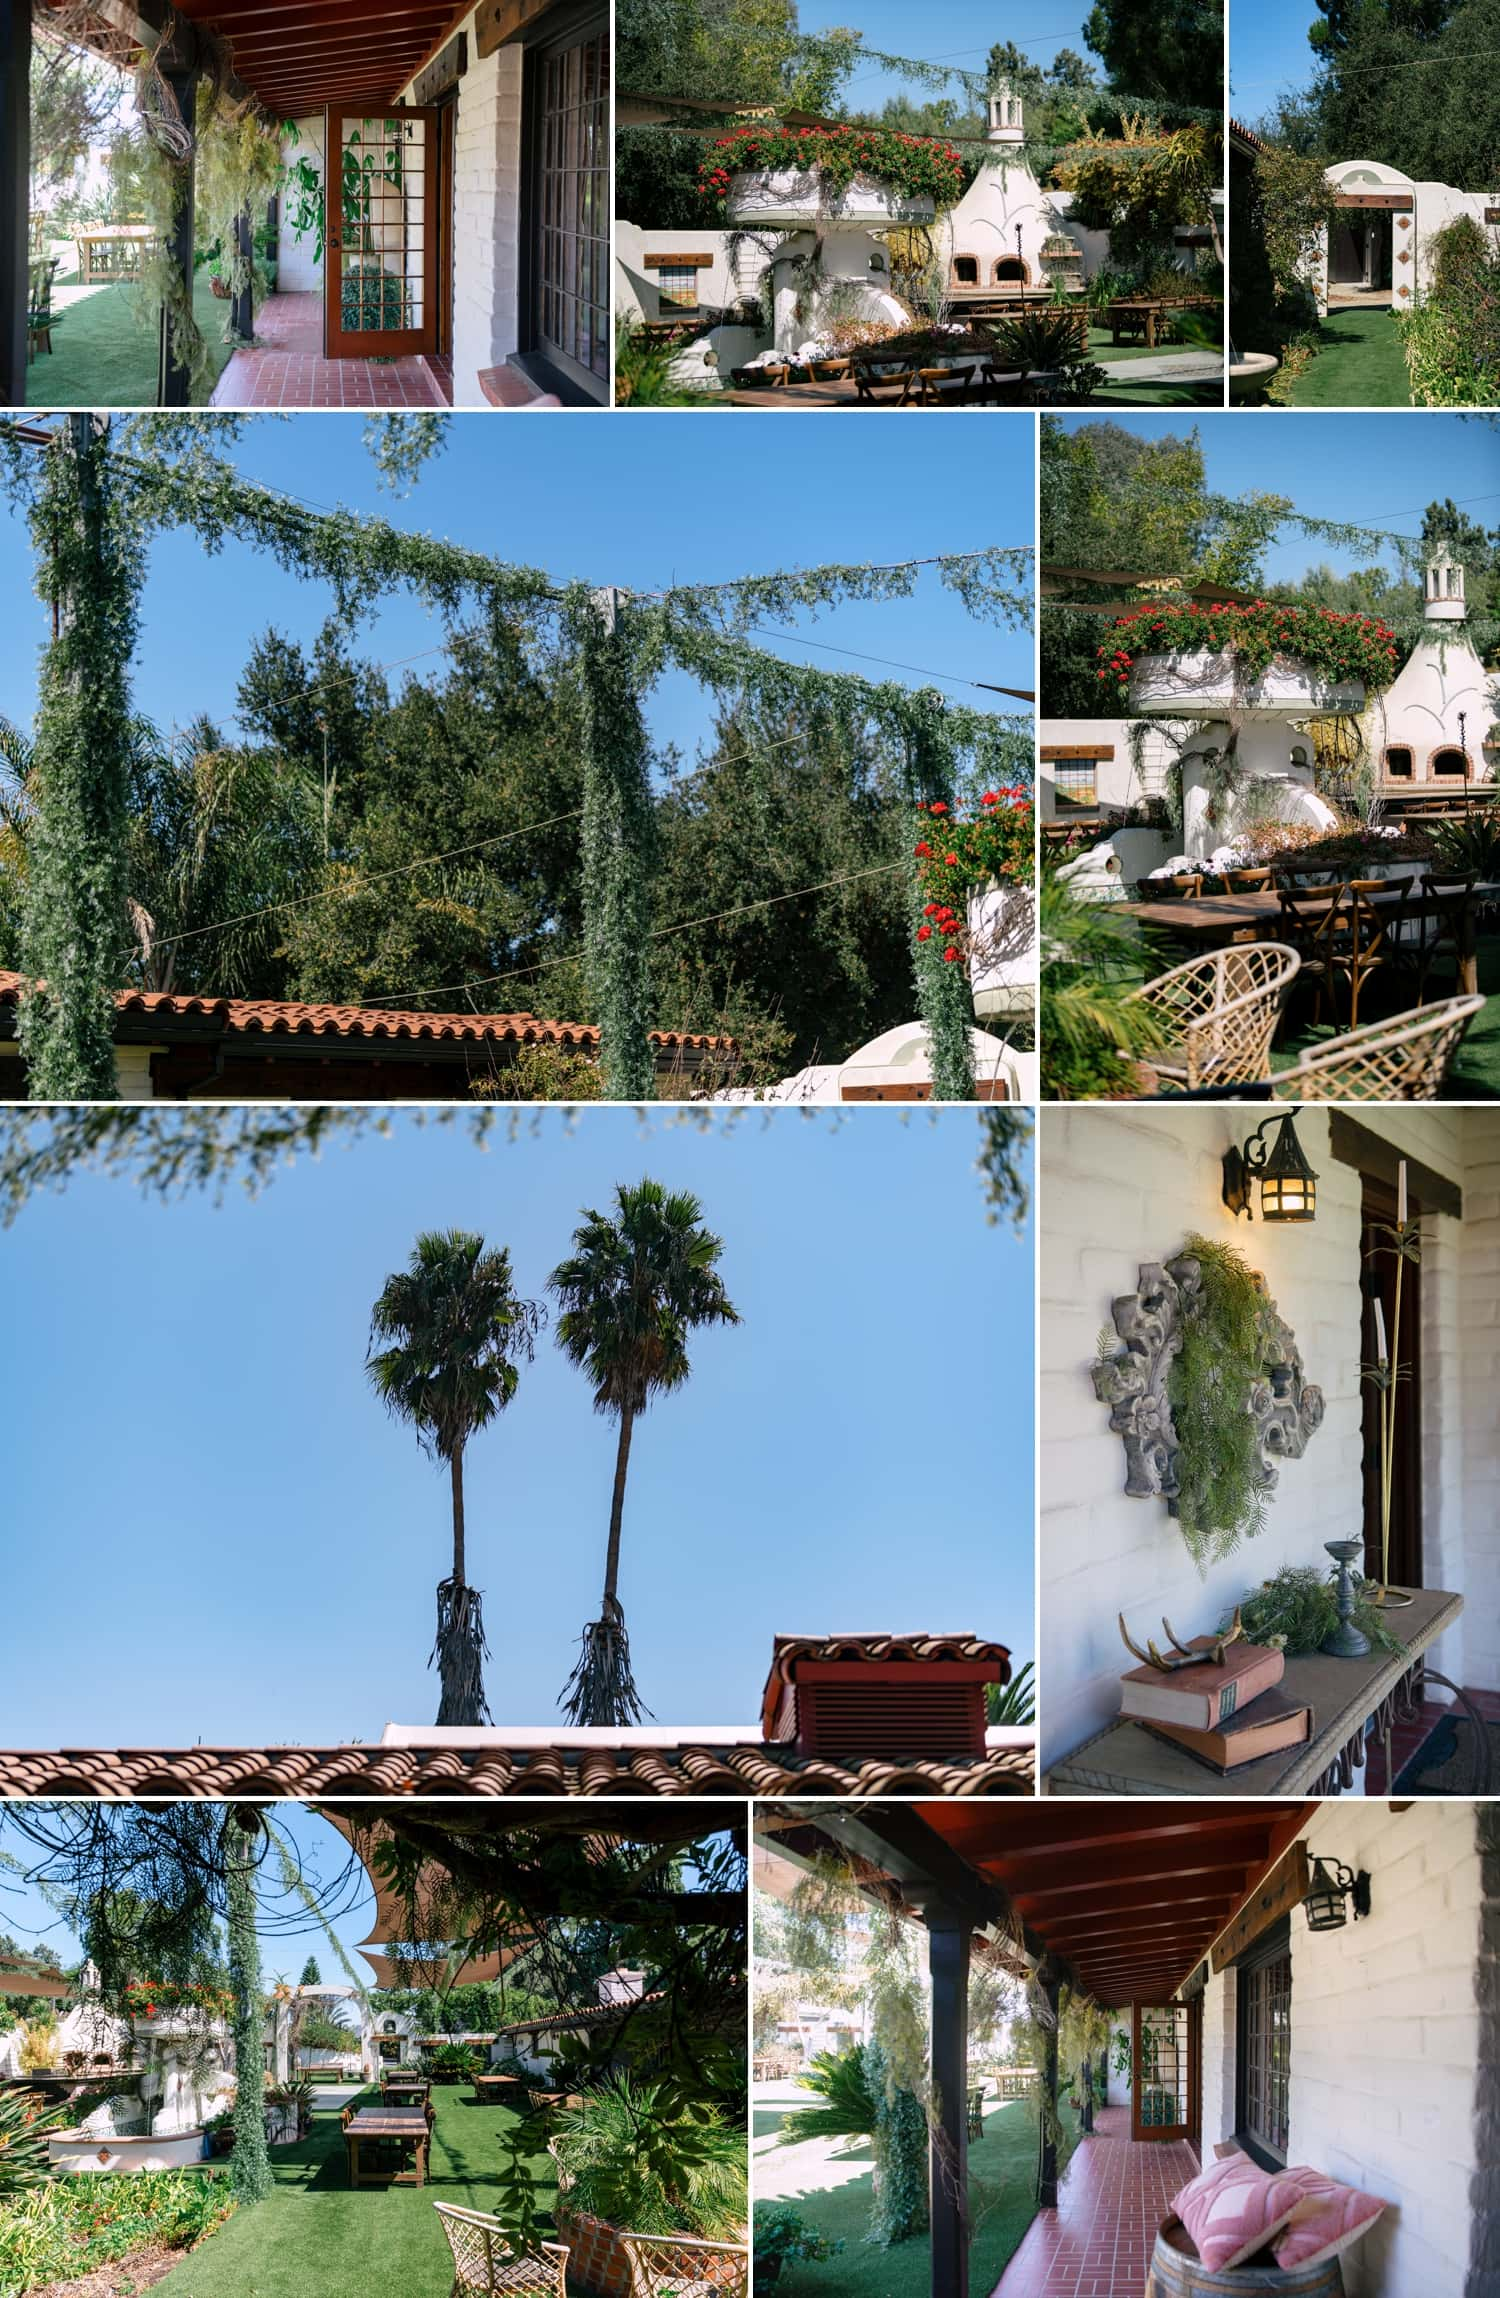 The grounds at Tivoli in Fallbrook